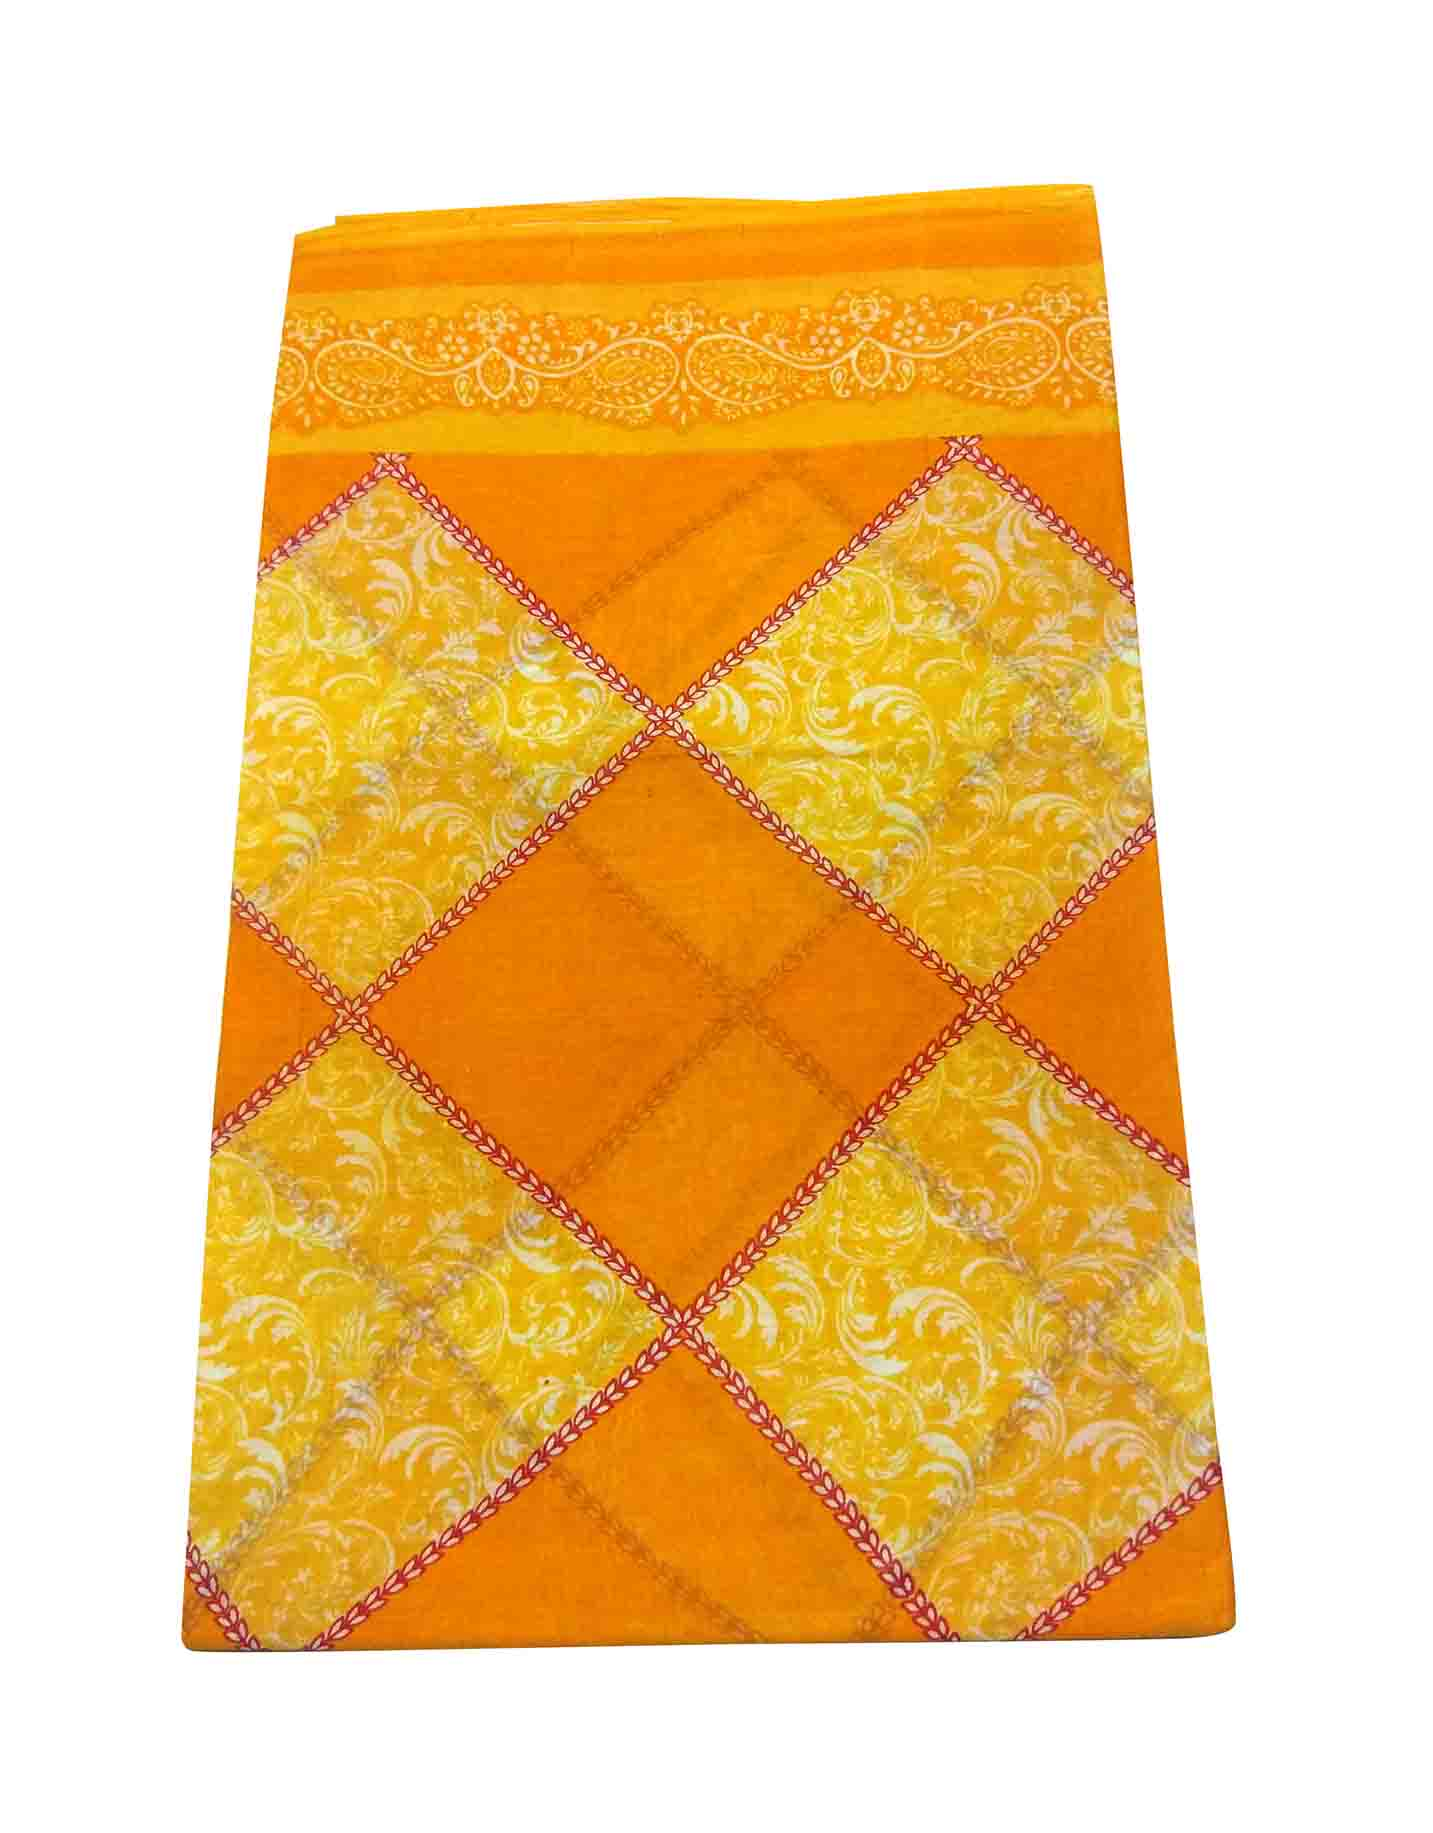 WMN COTTON SAREE WITHOUT BLOUSE-YELLOW-AT COTTON PRINT D NO 2